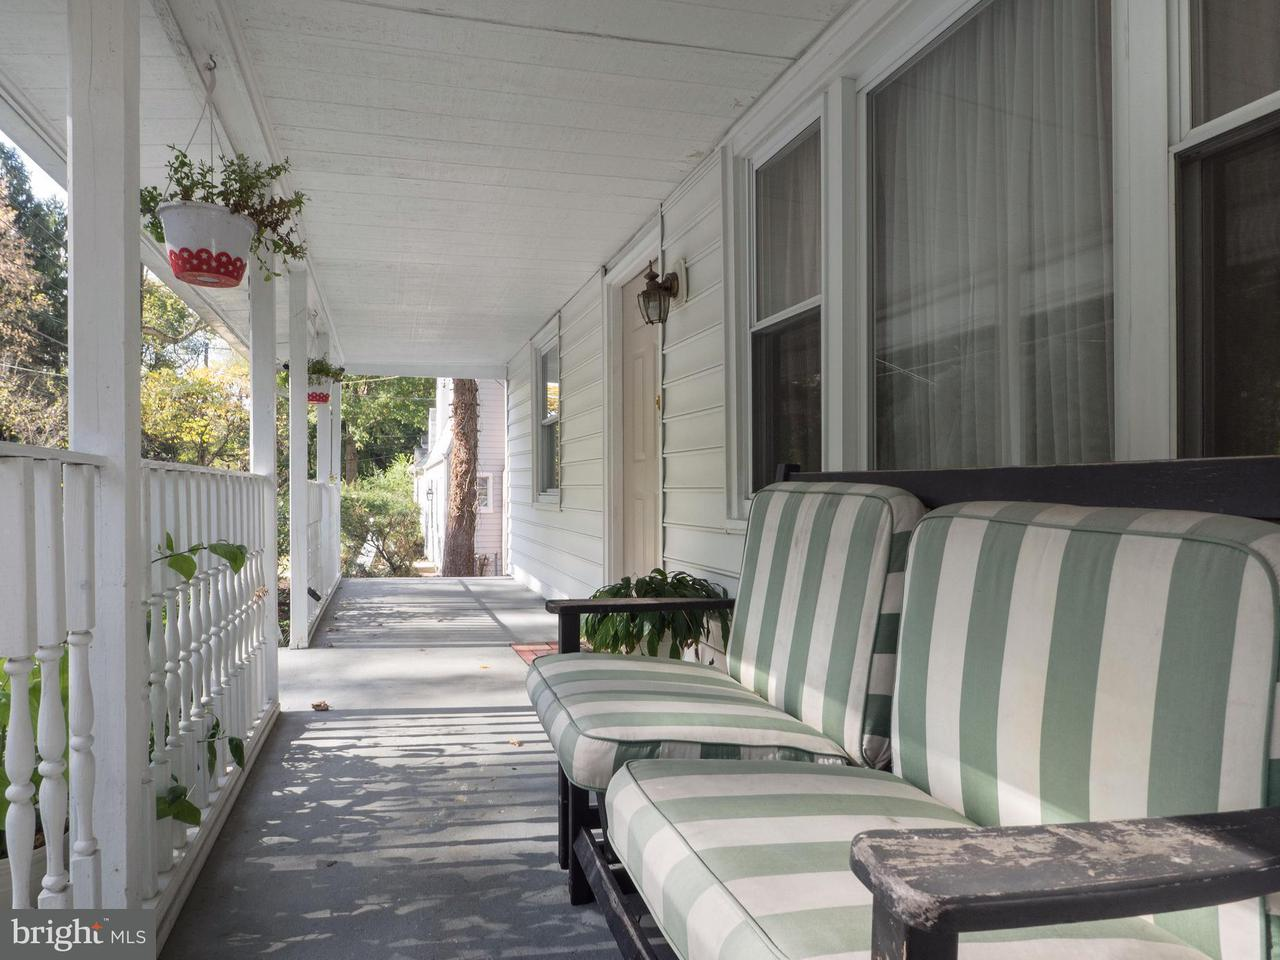 Single Family Home for Sale at 10221 CAPITOL VIEW Avenue 10221 CAPITOL VIEW Avenue Silver Spring, Maryland 20910 United States